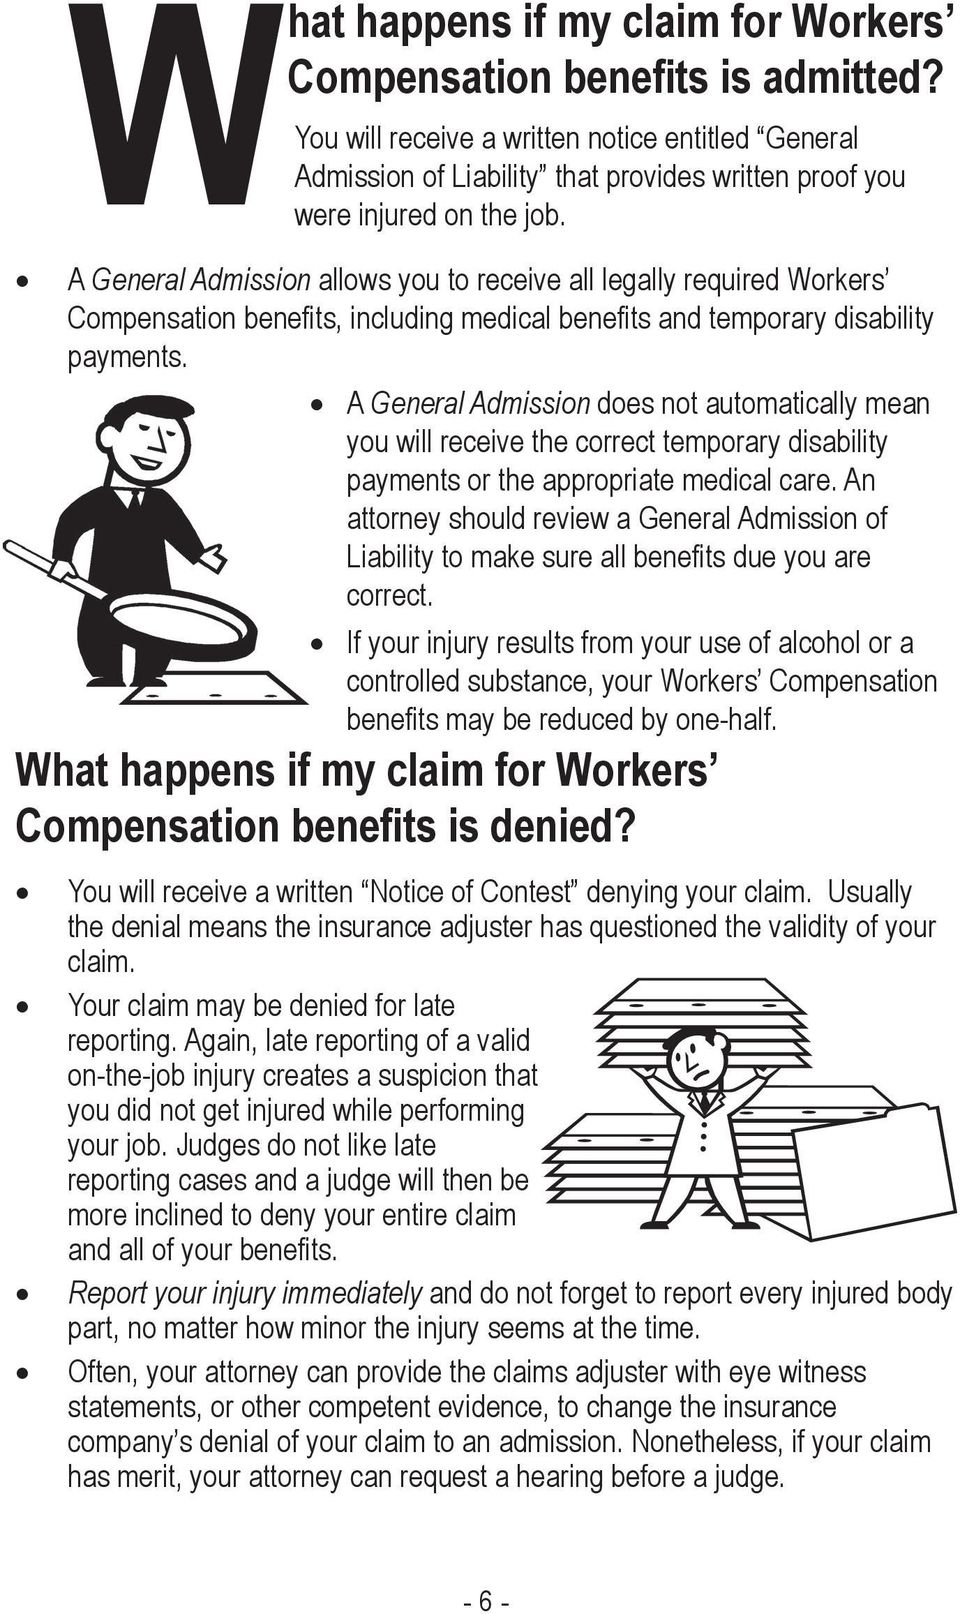 A General Admission allows you to receive all legally required Workers Compensation bene ts, including medical bene ts and temporary disability payments.